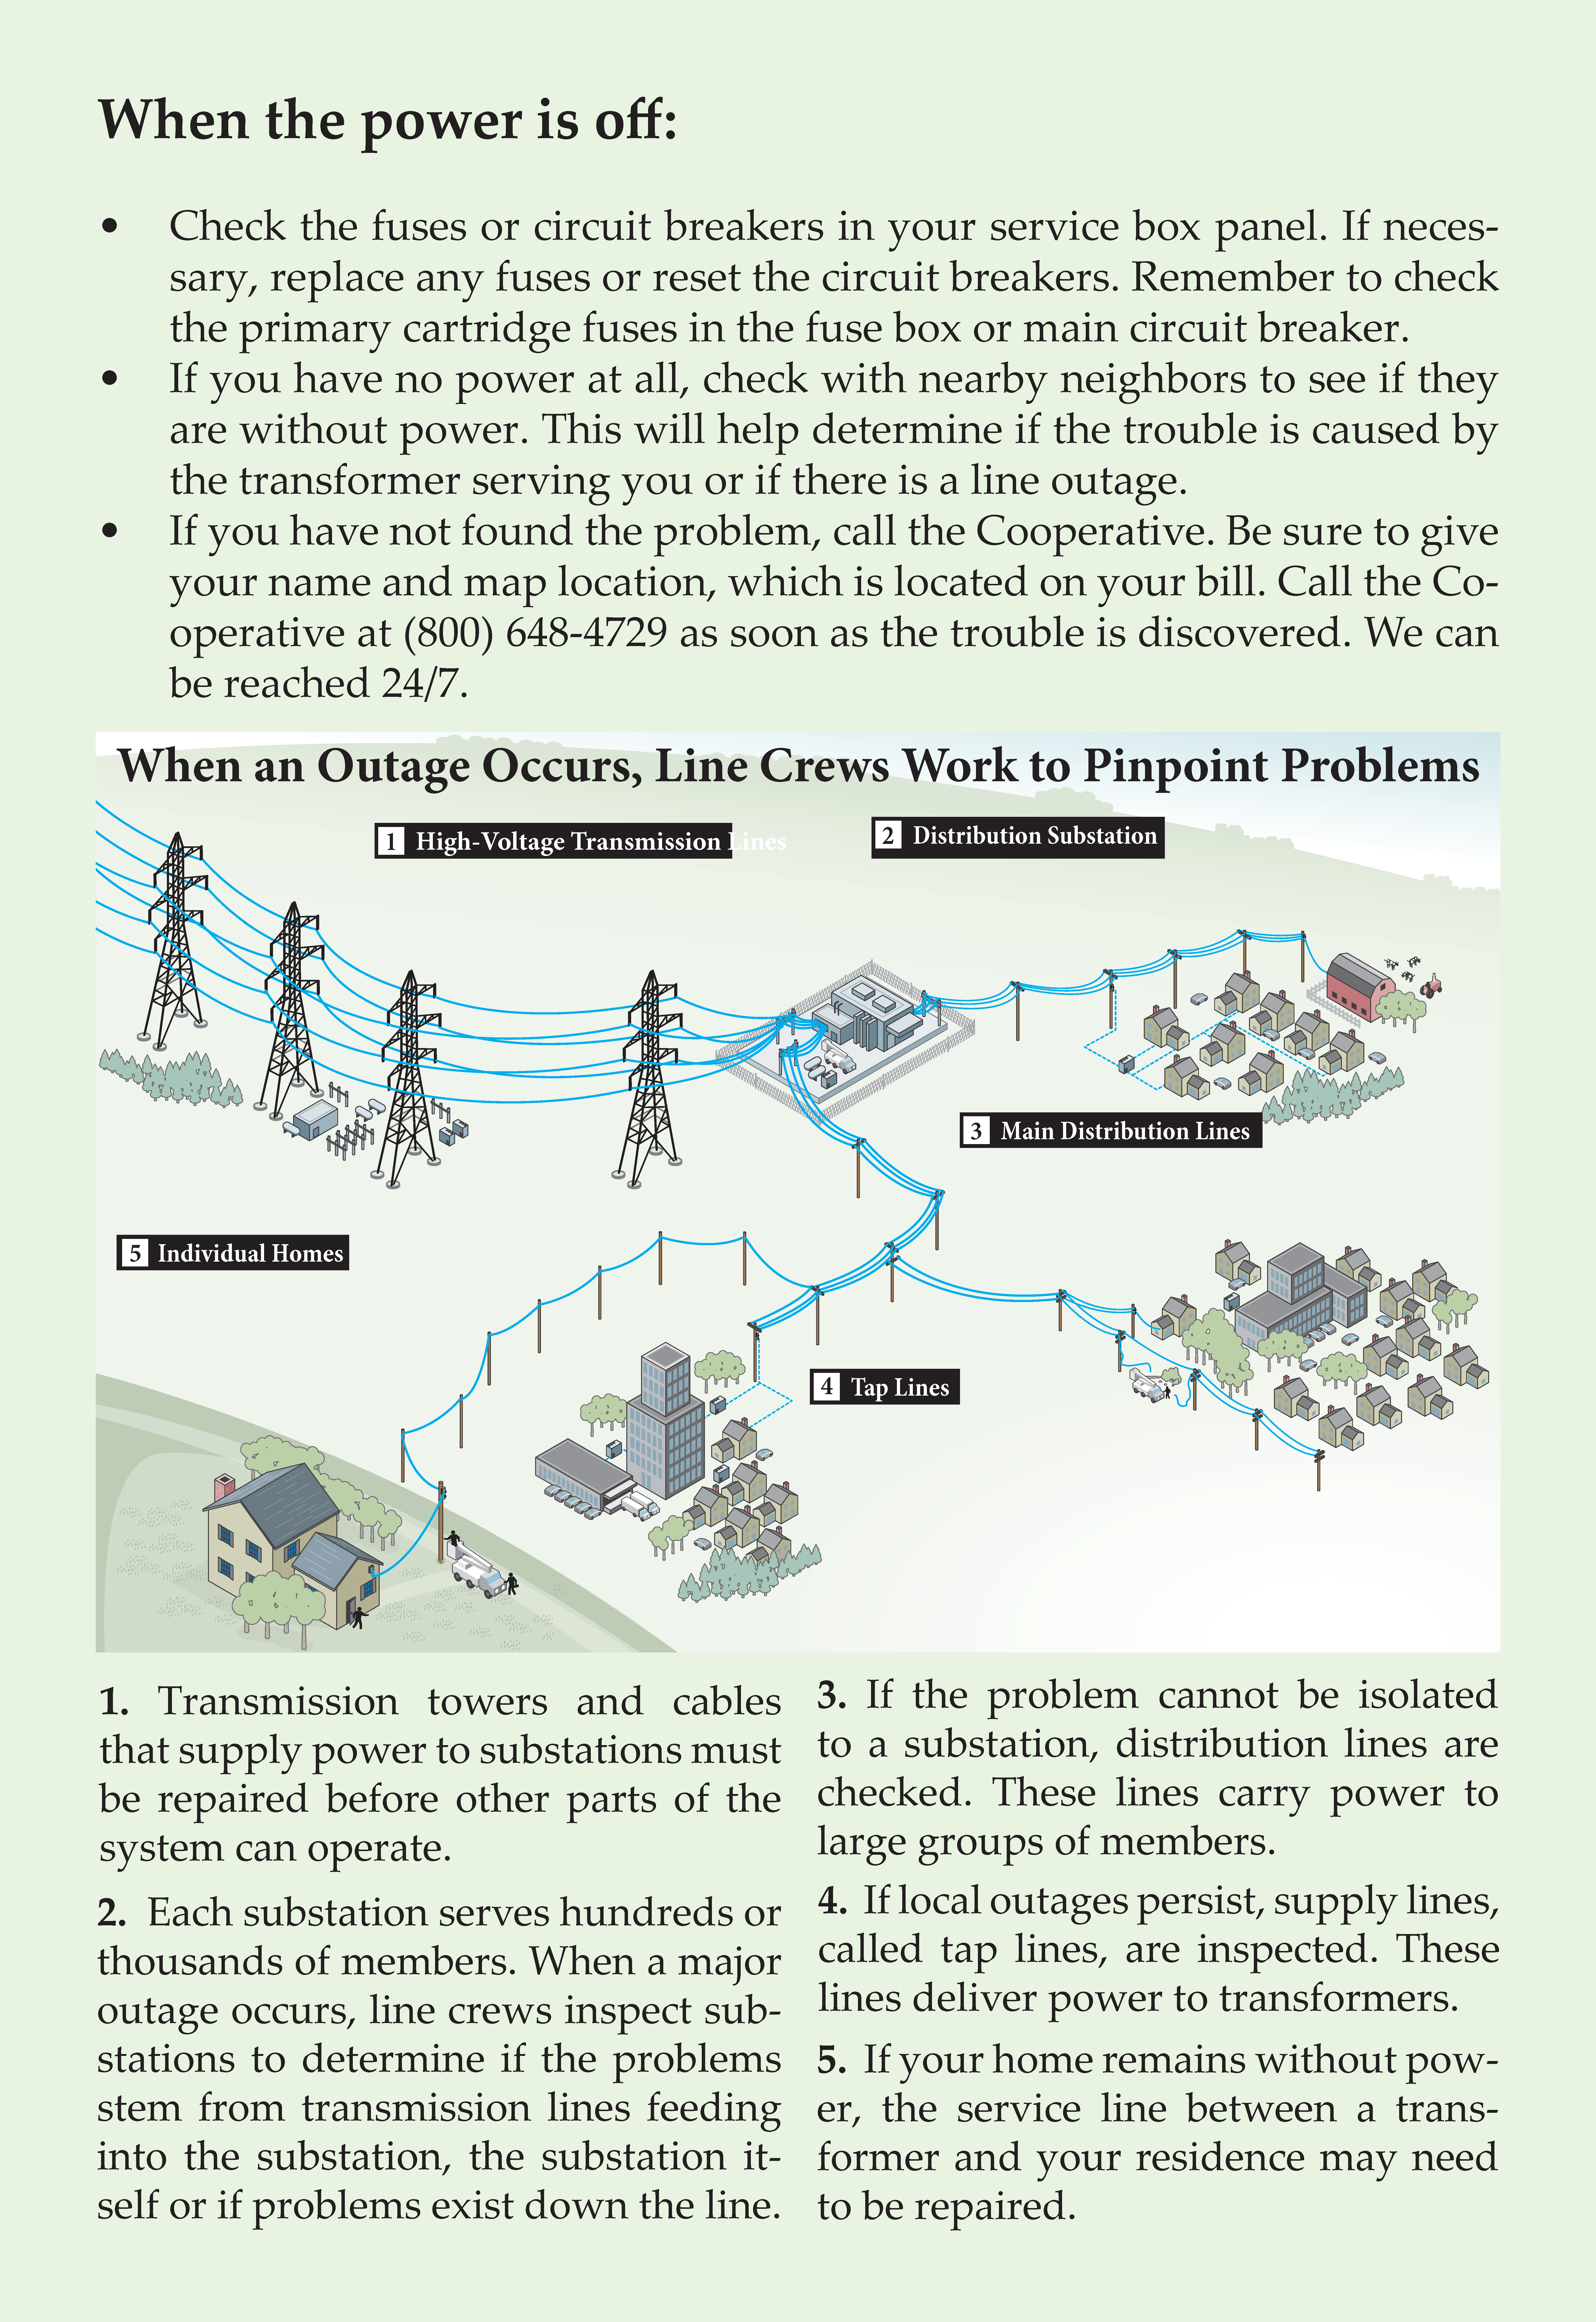 Outage process and causes